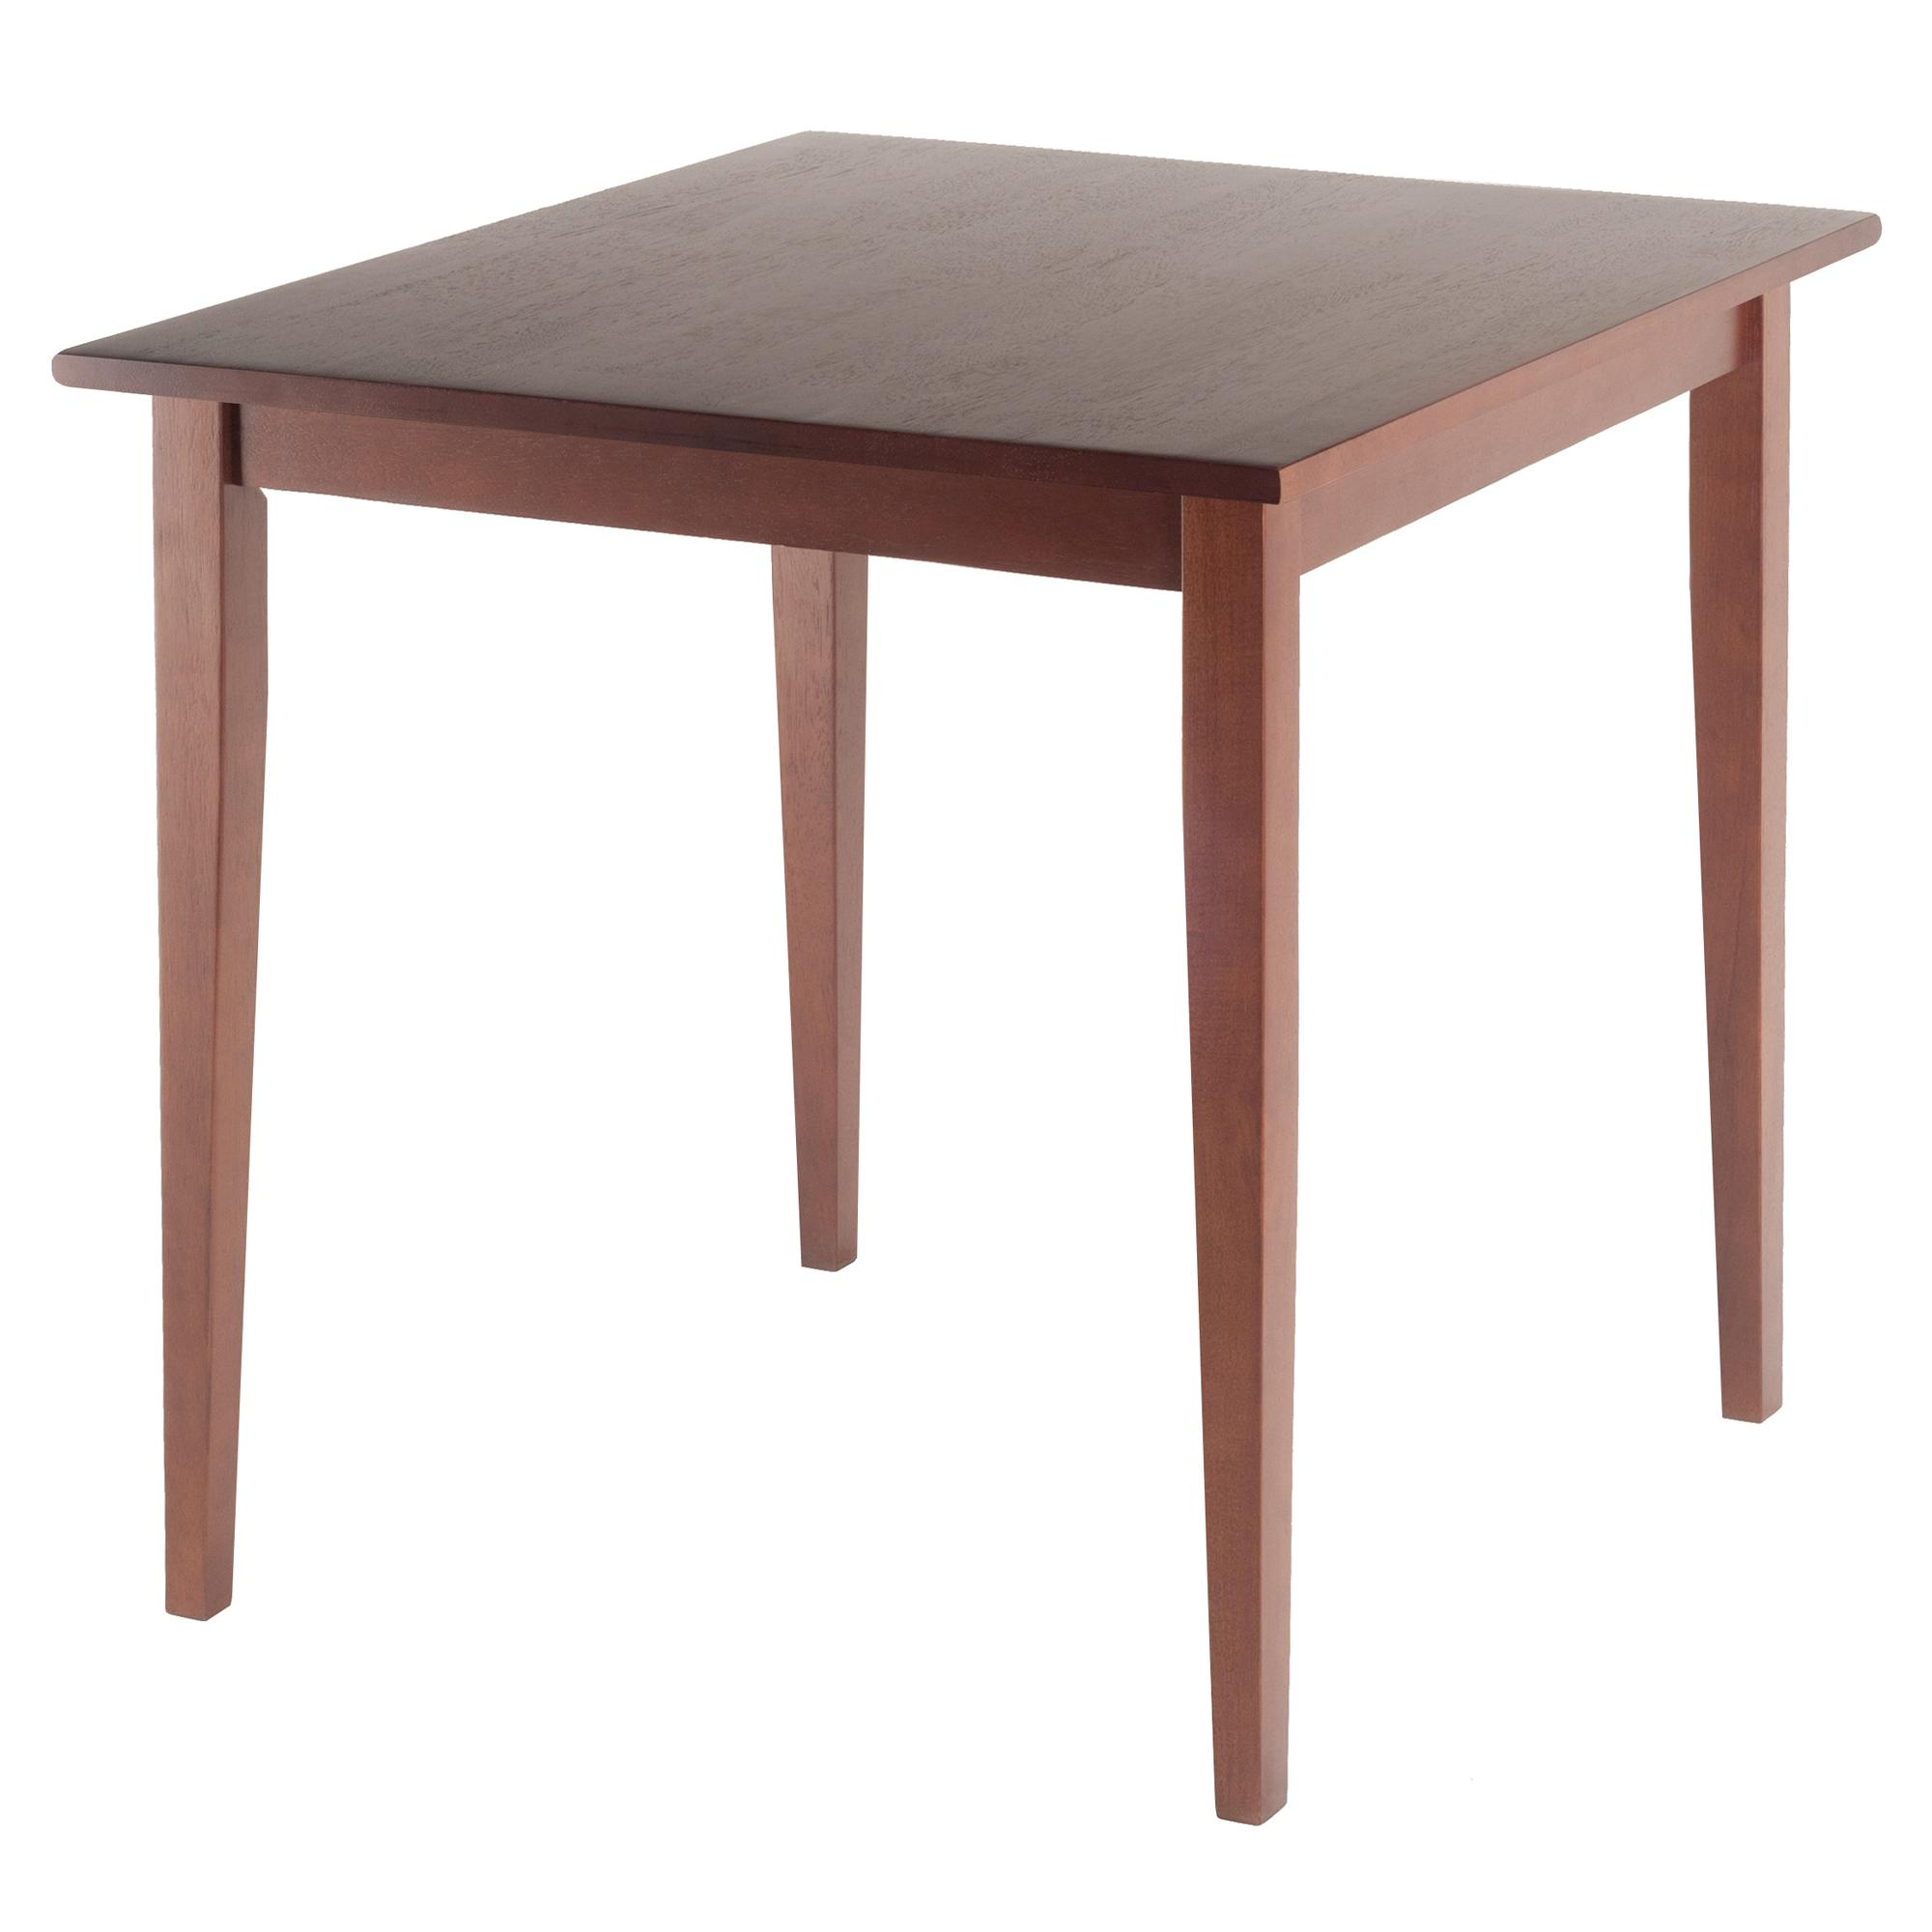 Winsome wood groveland square dining table in for Dinner table wood